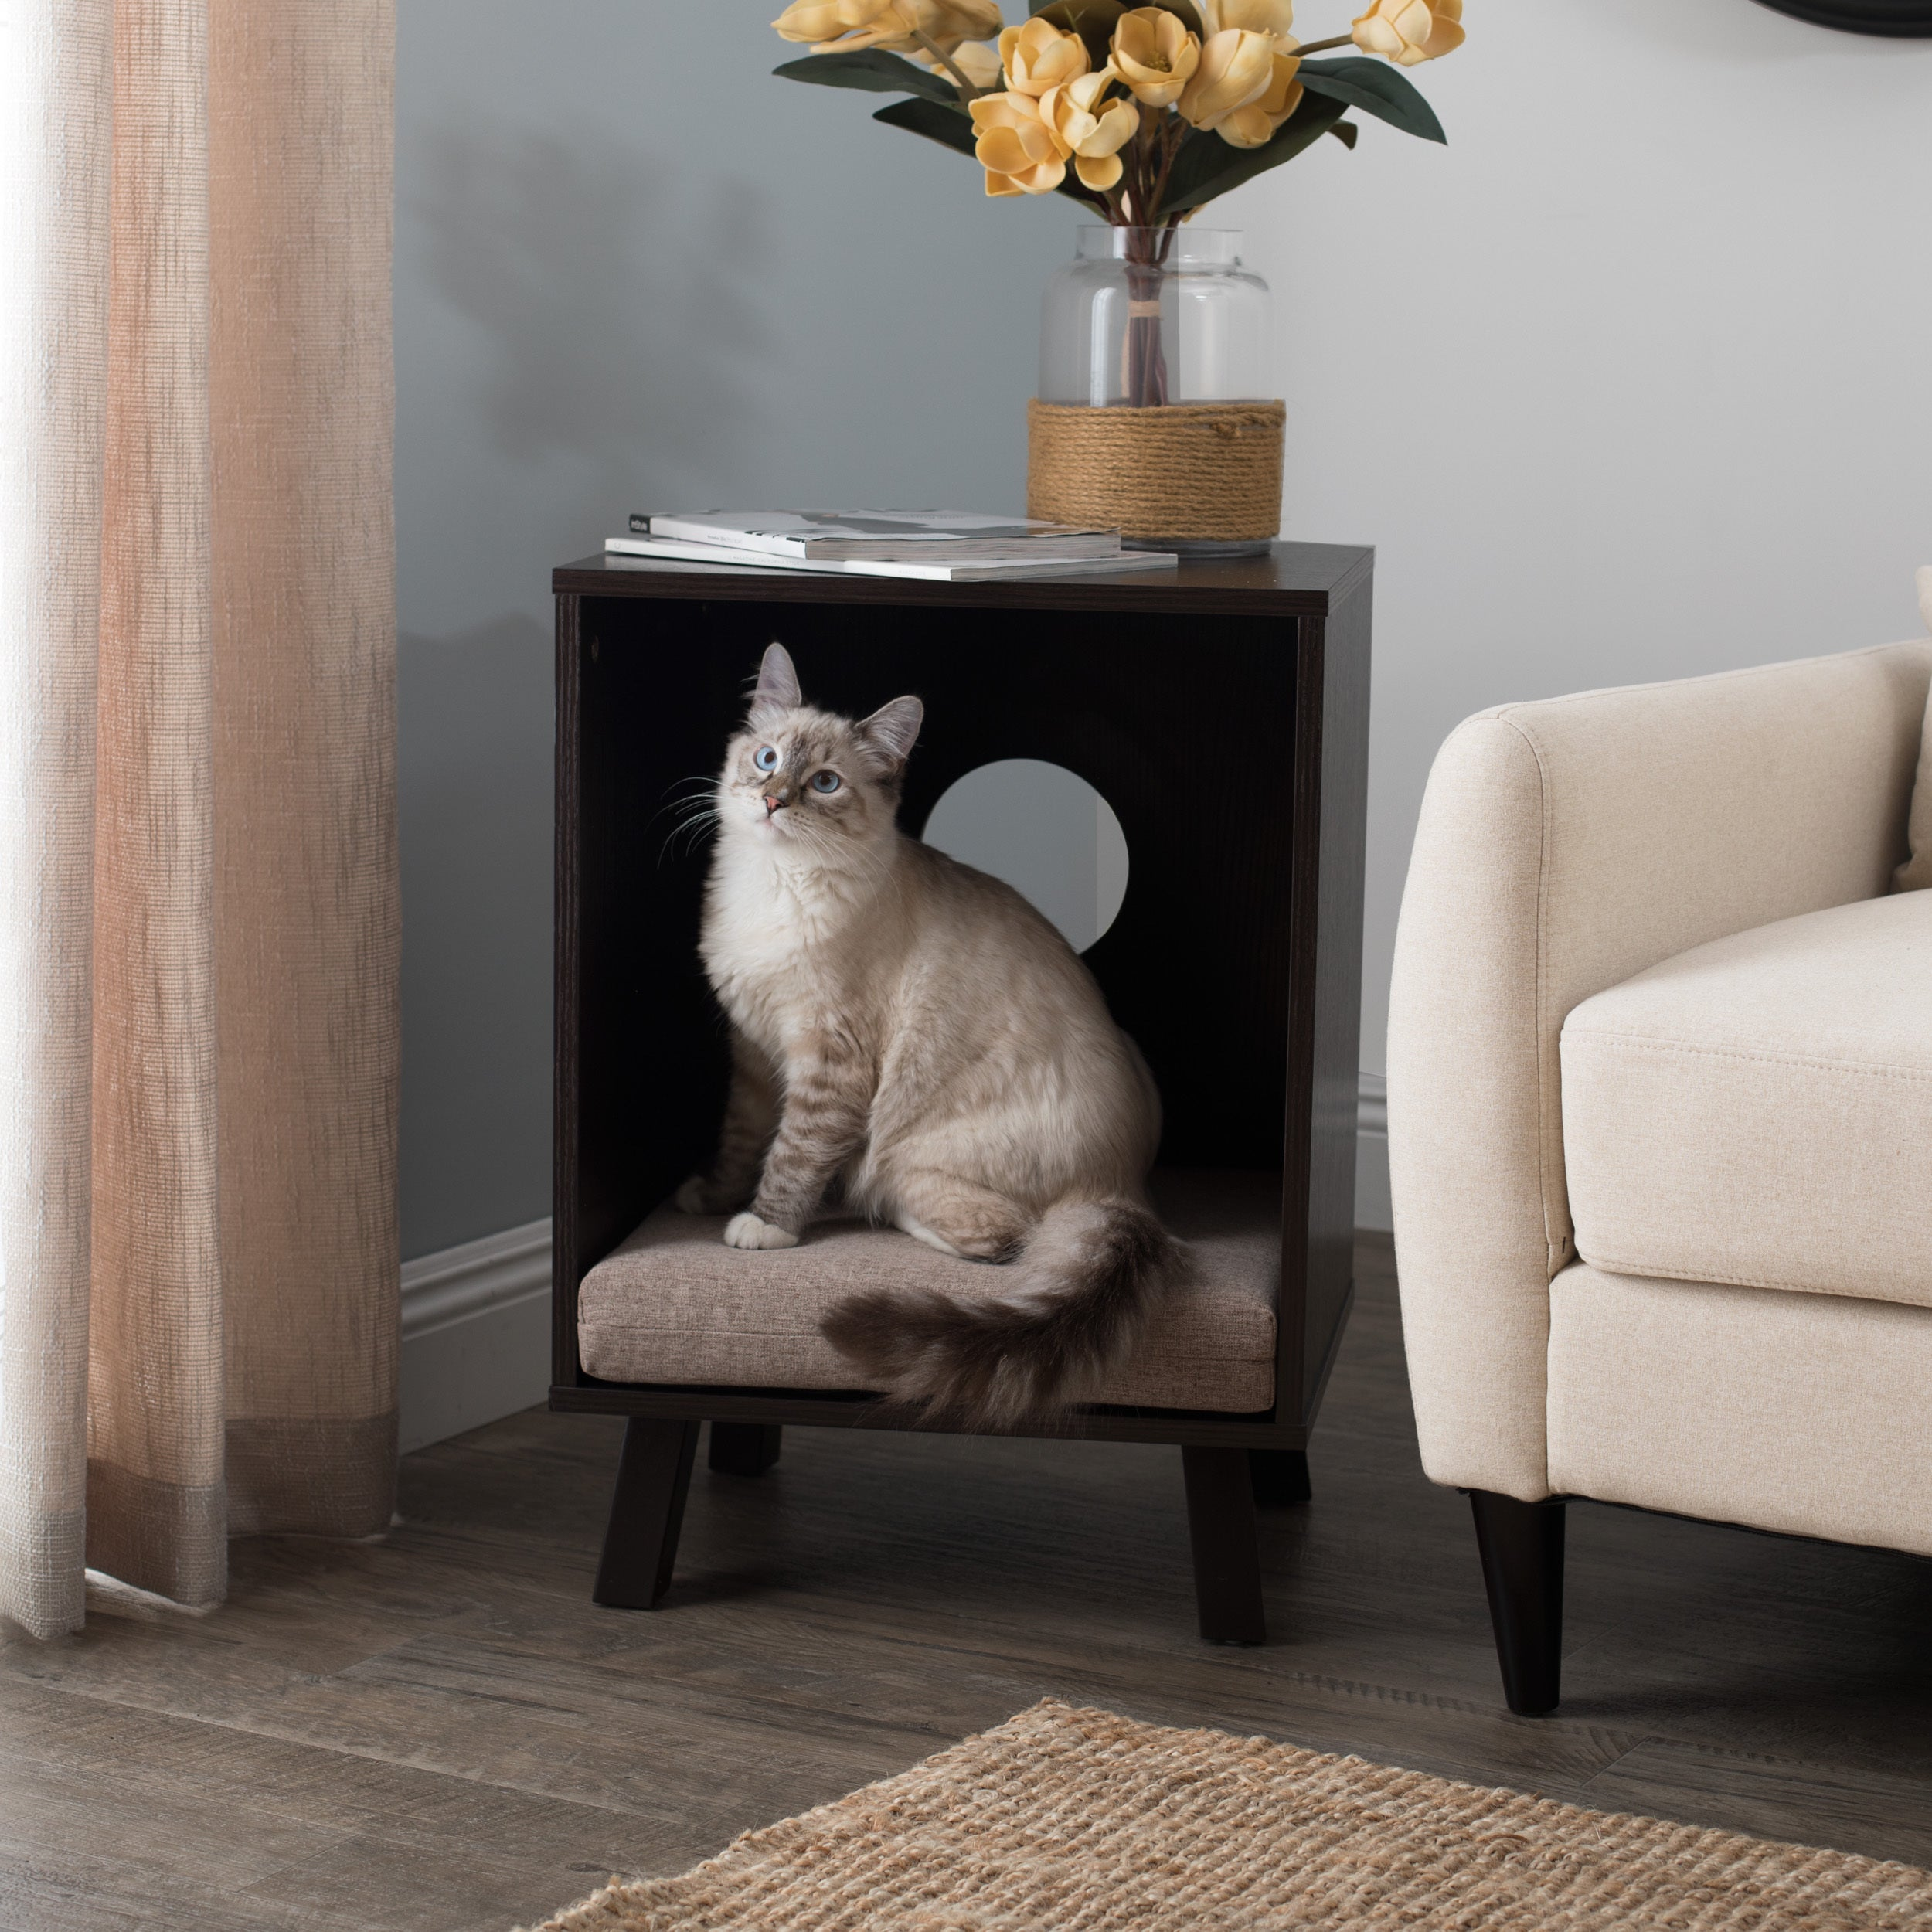 studio designs paws purrs pet end table centerpieces highlands bedroom furniture bedside night modern decor small espresso nightstand beveled glass top wall color that goes with